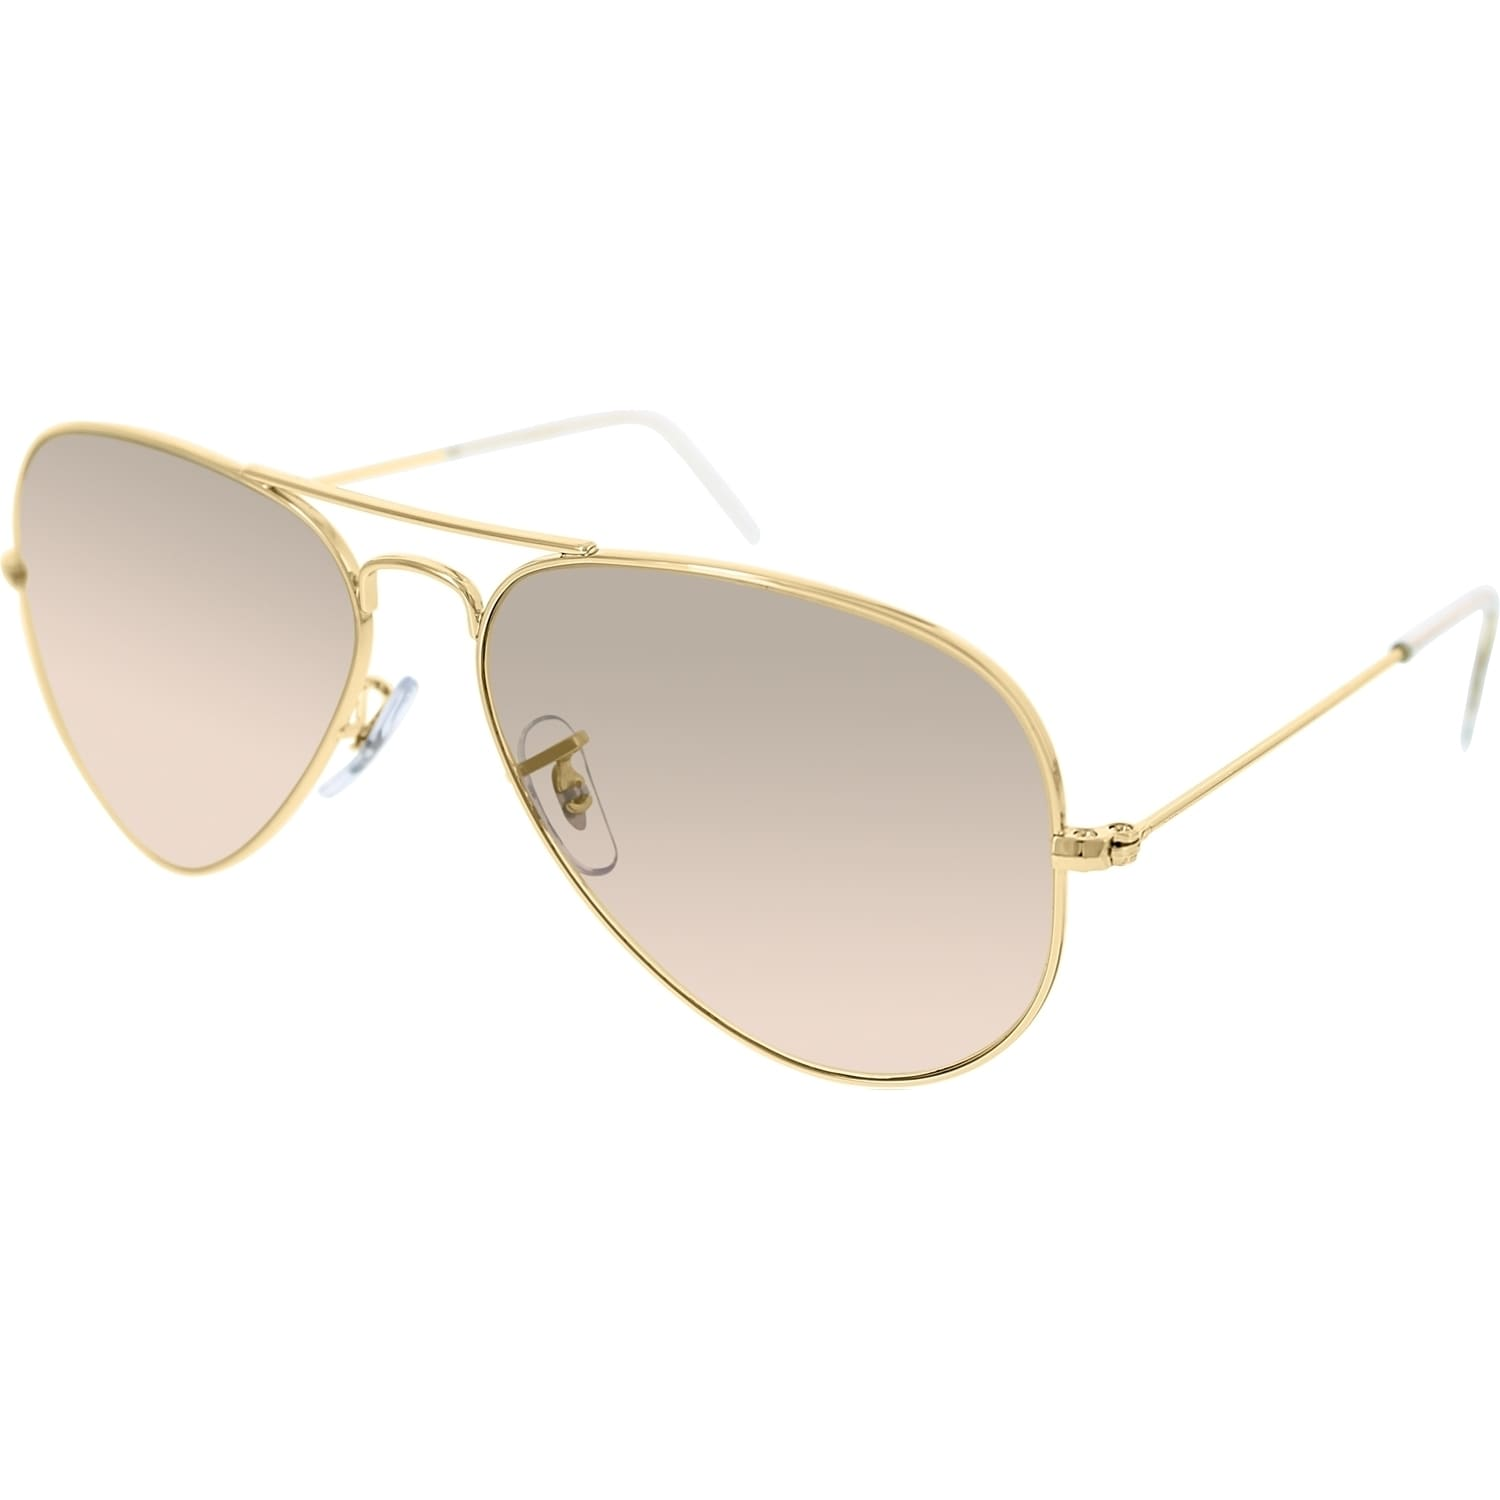 3b287e36f67d Ray-Ban Aviator RB3025 Unisex Gold Frame Brown Light Pink Lens Sunglasses